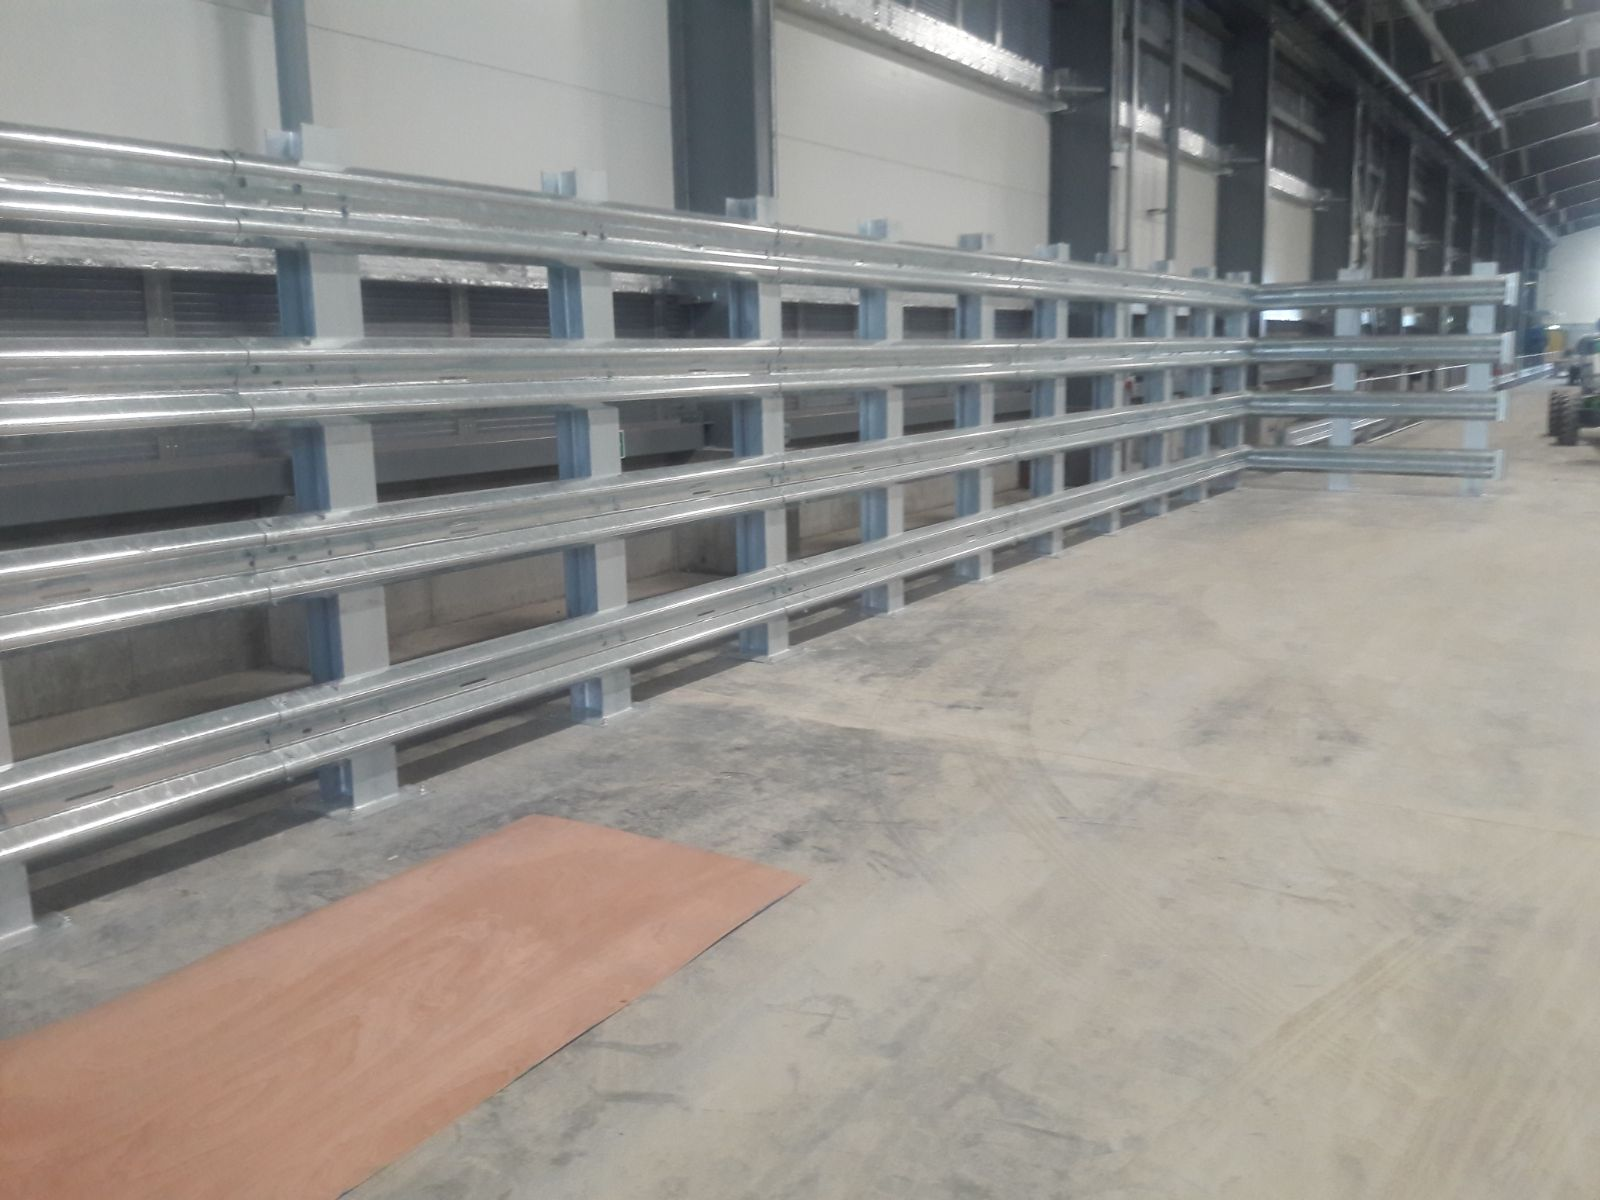 Four high armco barriers